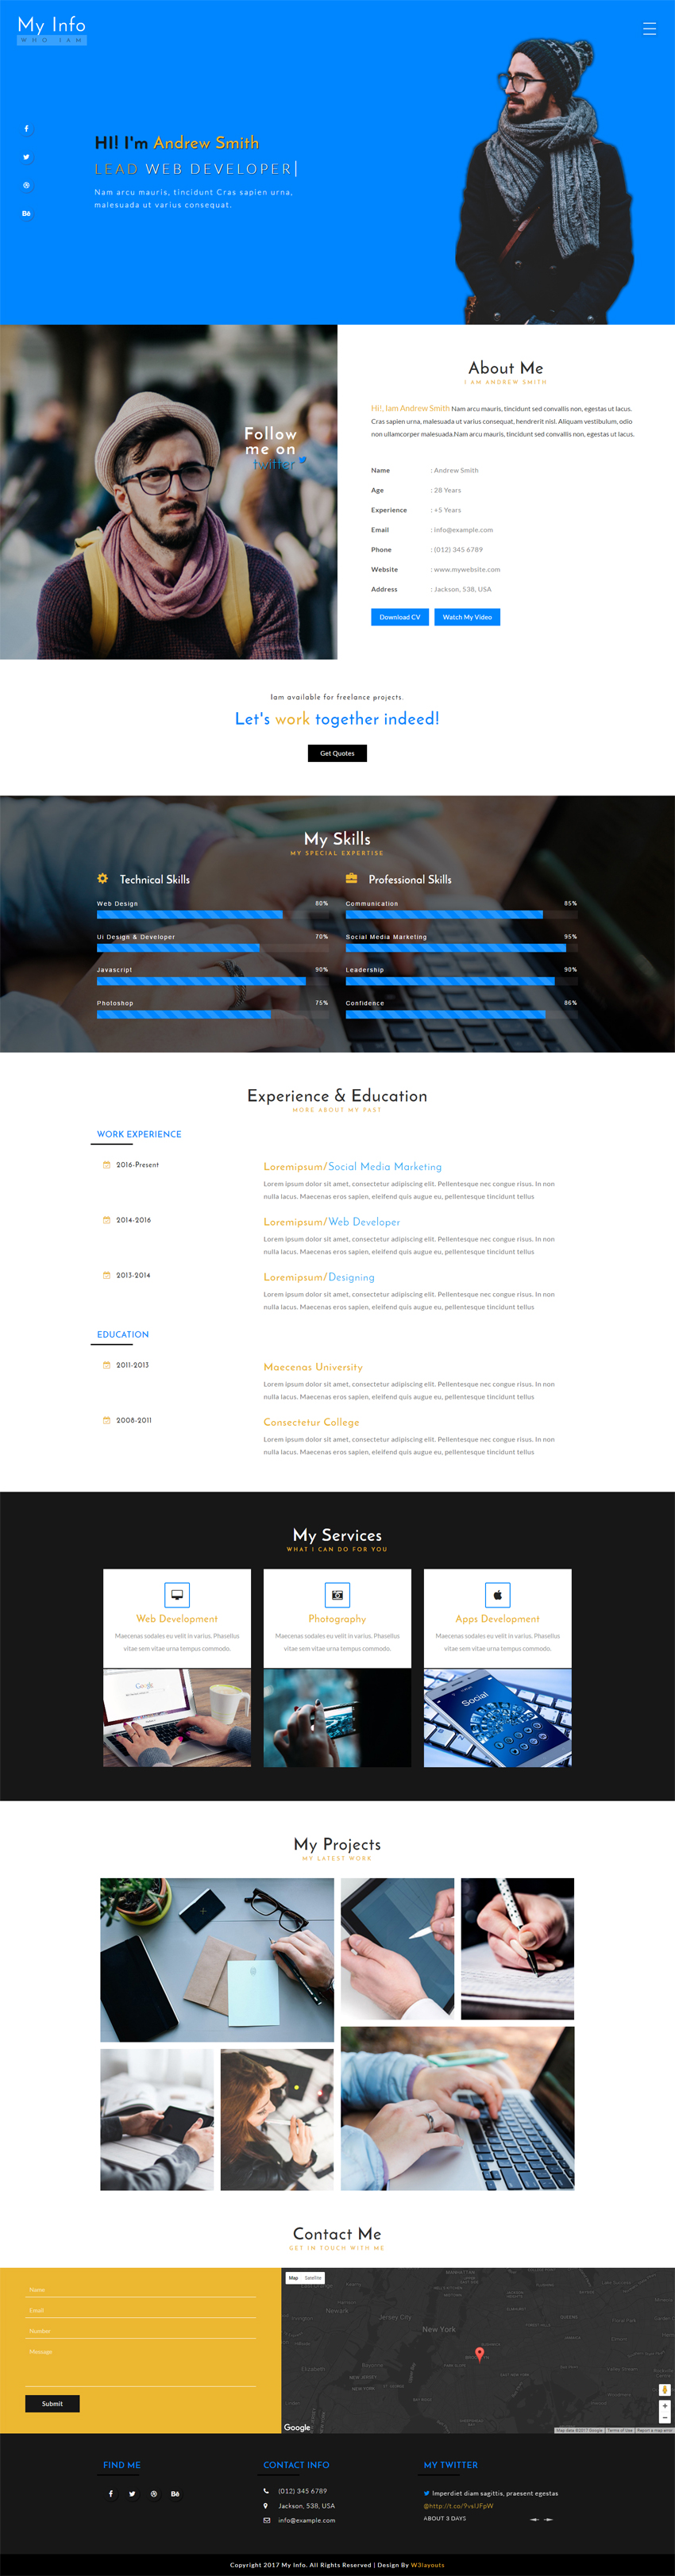 My Info Personal Profile Bootstrap Responsive Web Template | Free ...